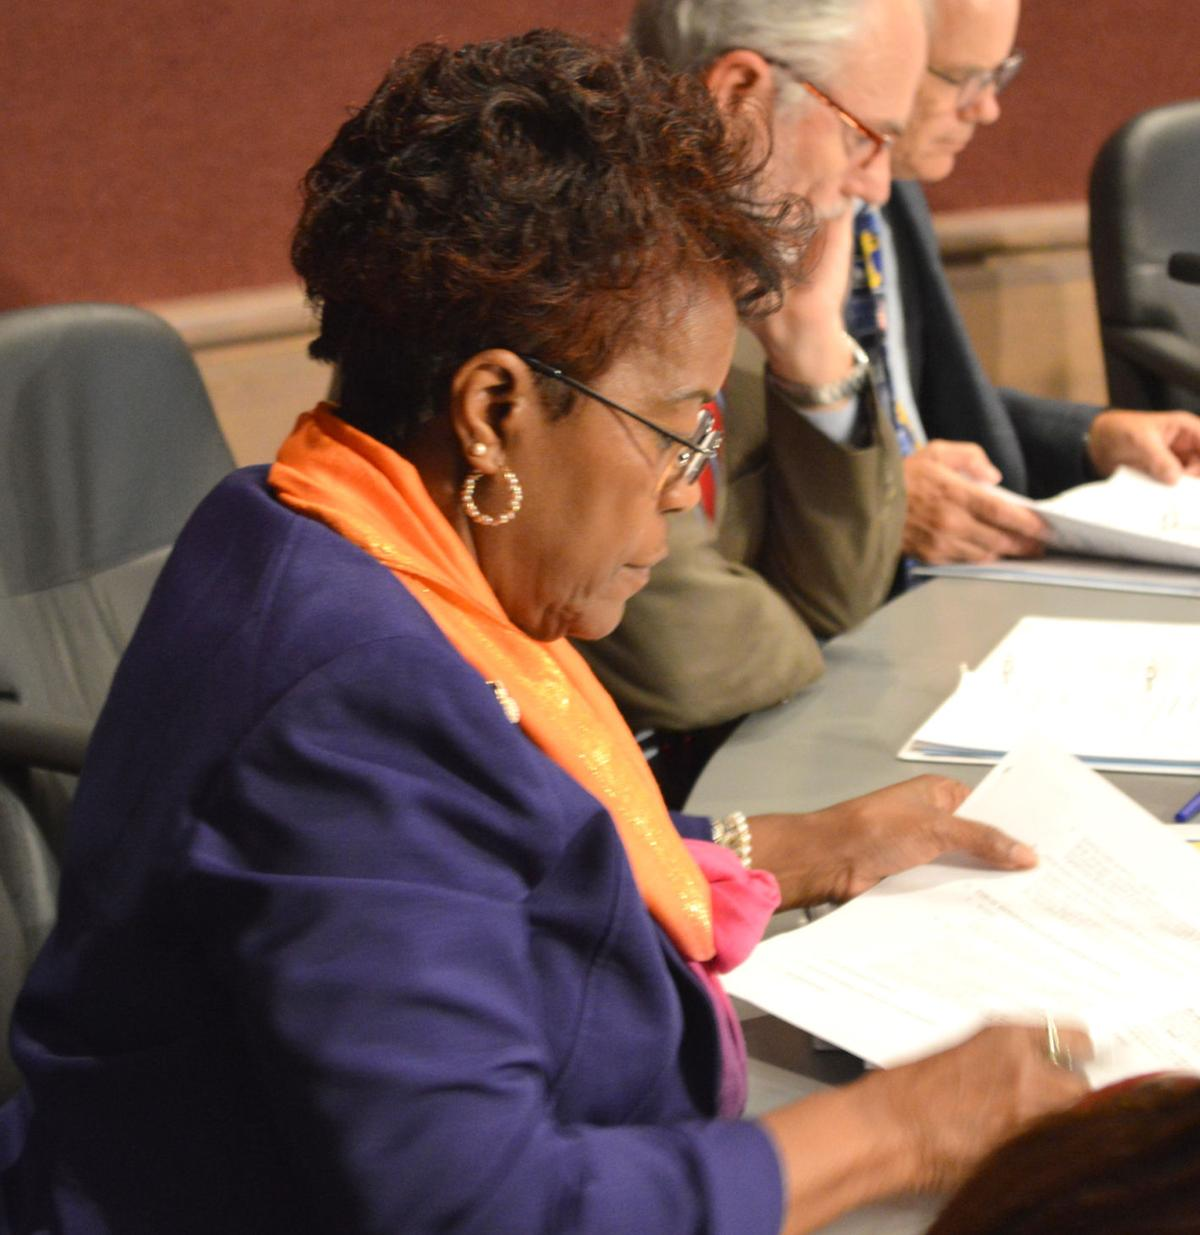 Albany has infrastructure projects out for bid